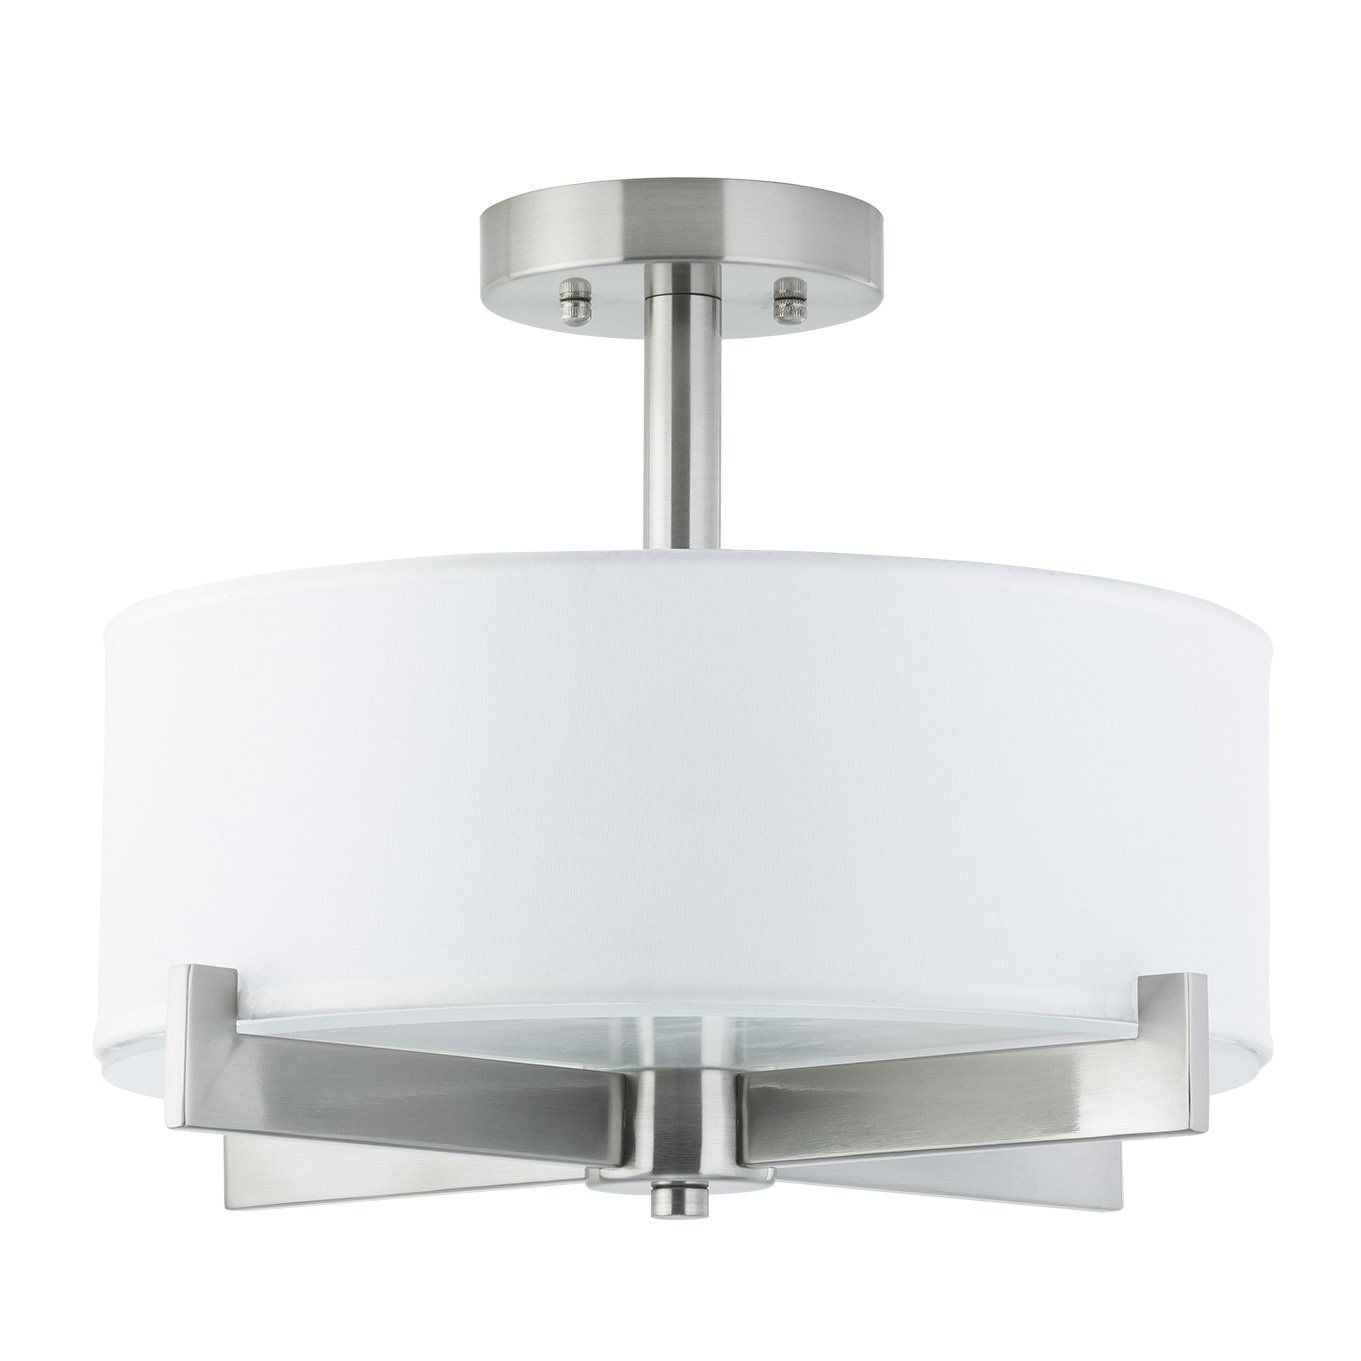 80 Linea Di Liara Allegro Semi Flushmount Ceiling Lamp 3 Light Fixture Brushed Nickel With